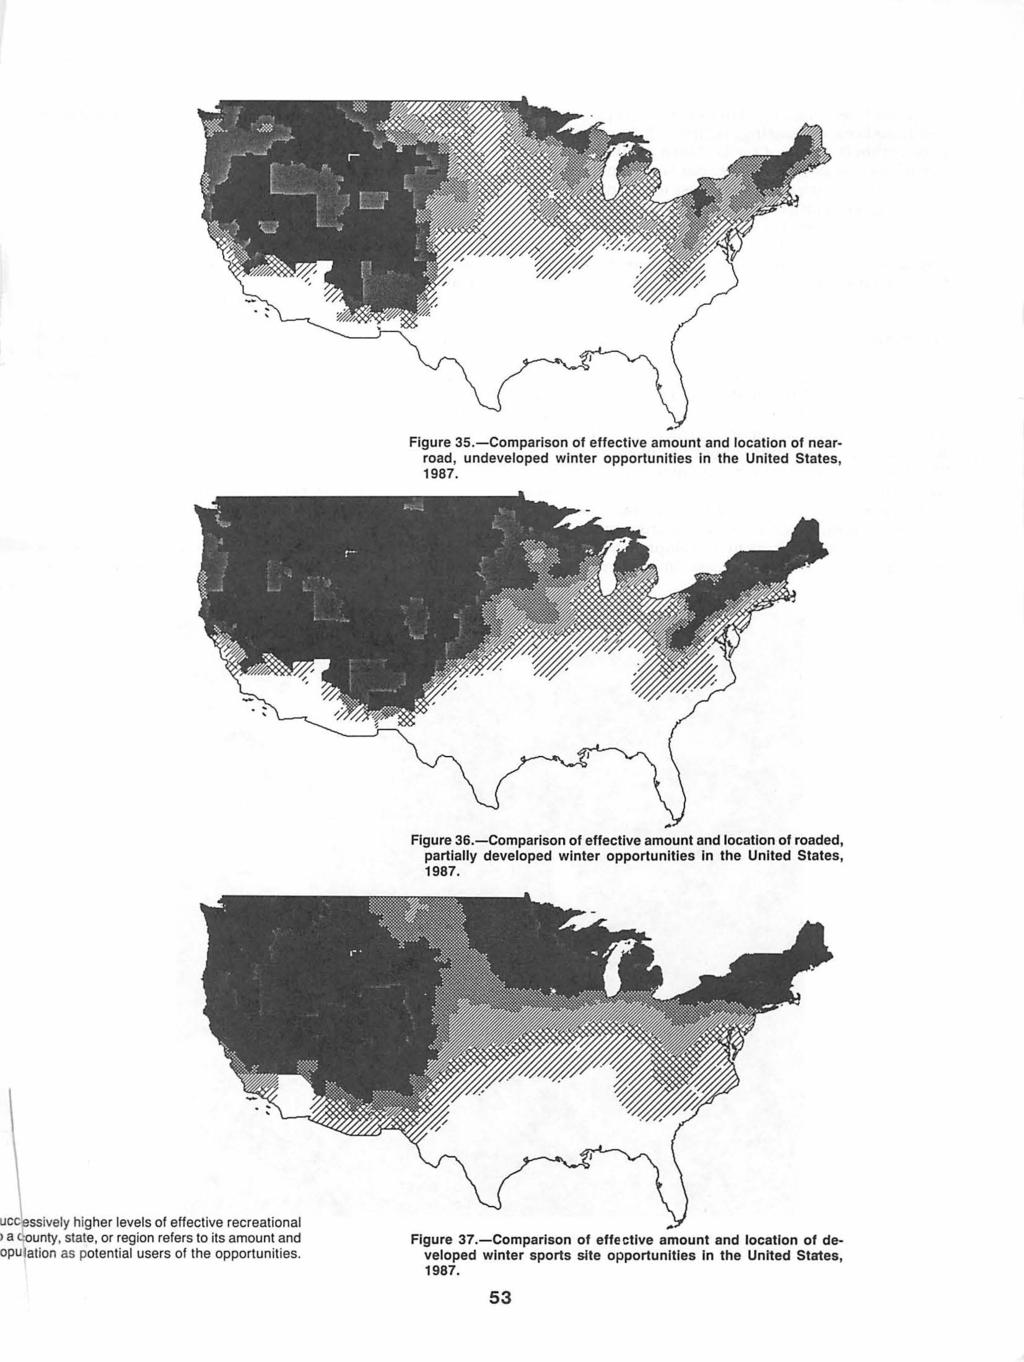 Figure 35.-Comparison of effective amount and location of nearroad, undeveloped winter opportunities in the United States, 1987. Figure 36.